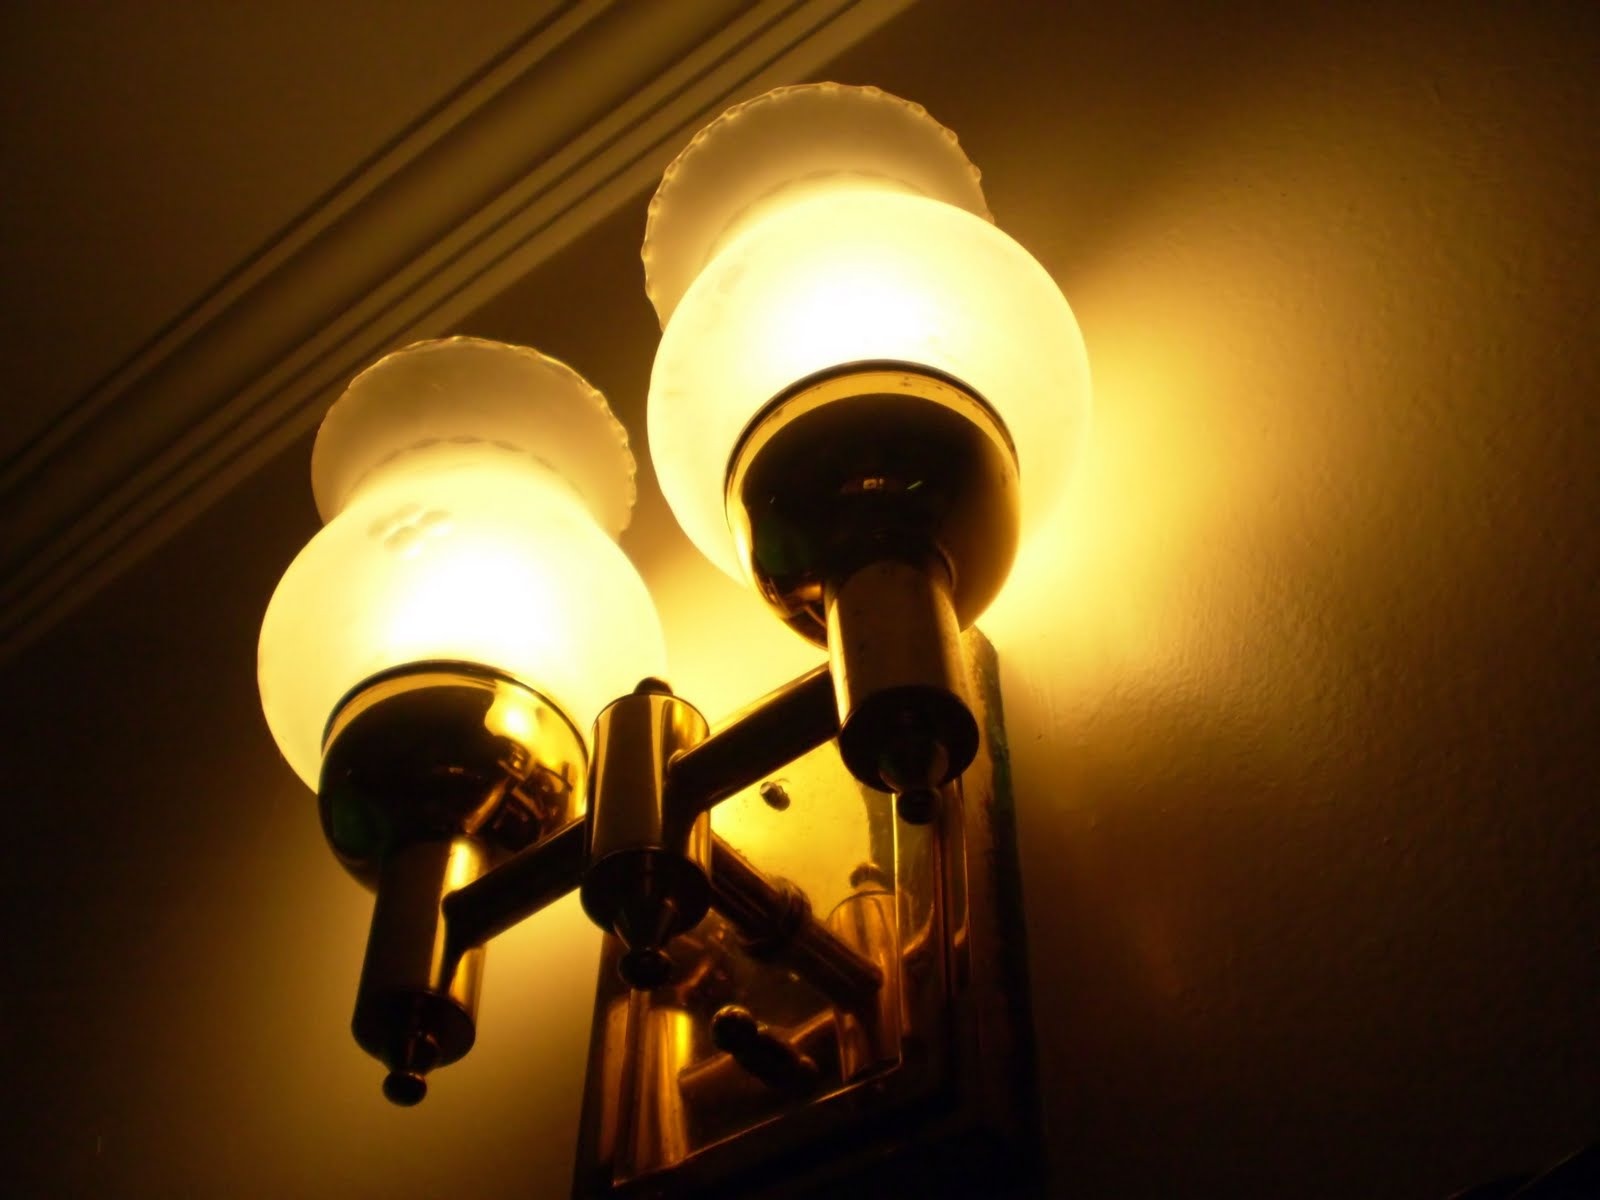 Old-fashioned Lighting at Home: May 2010